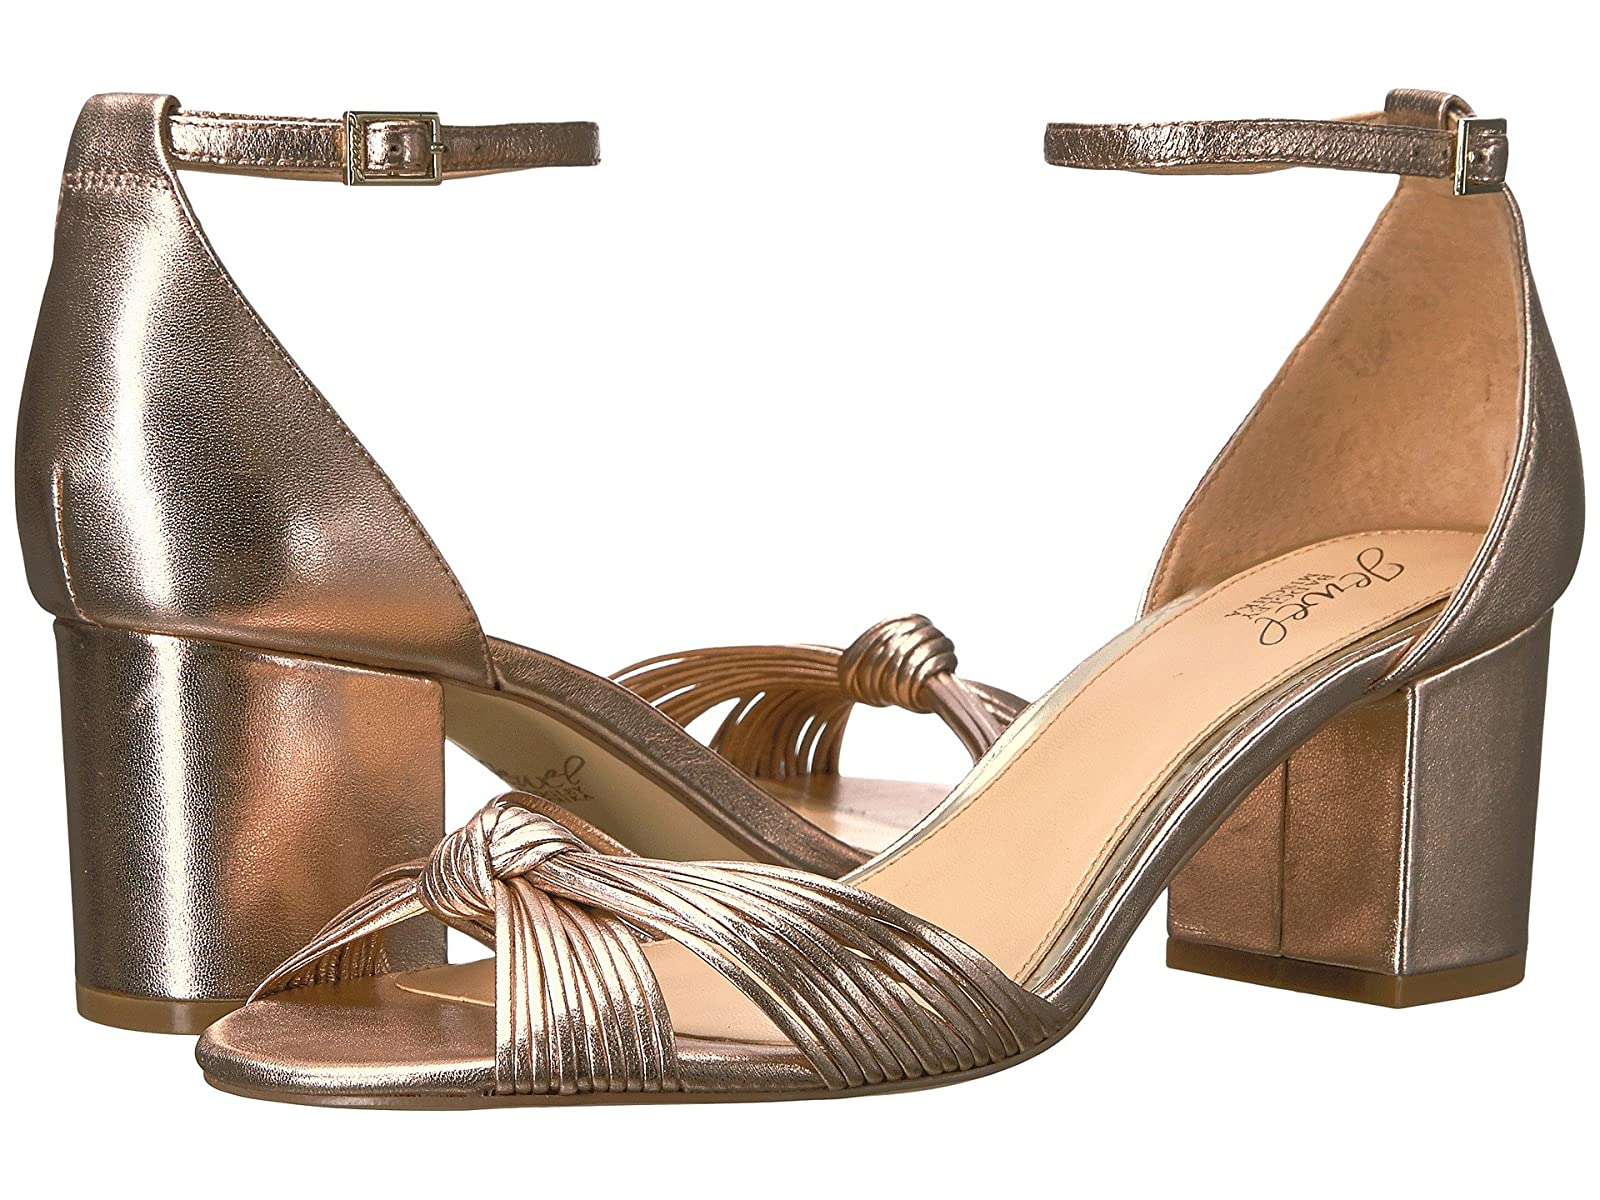 Jewel Badgley Mischka LaceyCheap and distinctive eye-catching shoes